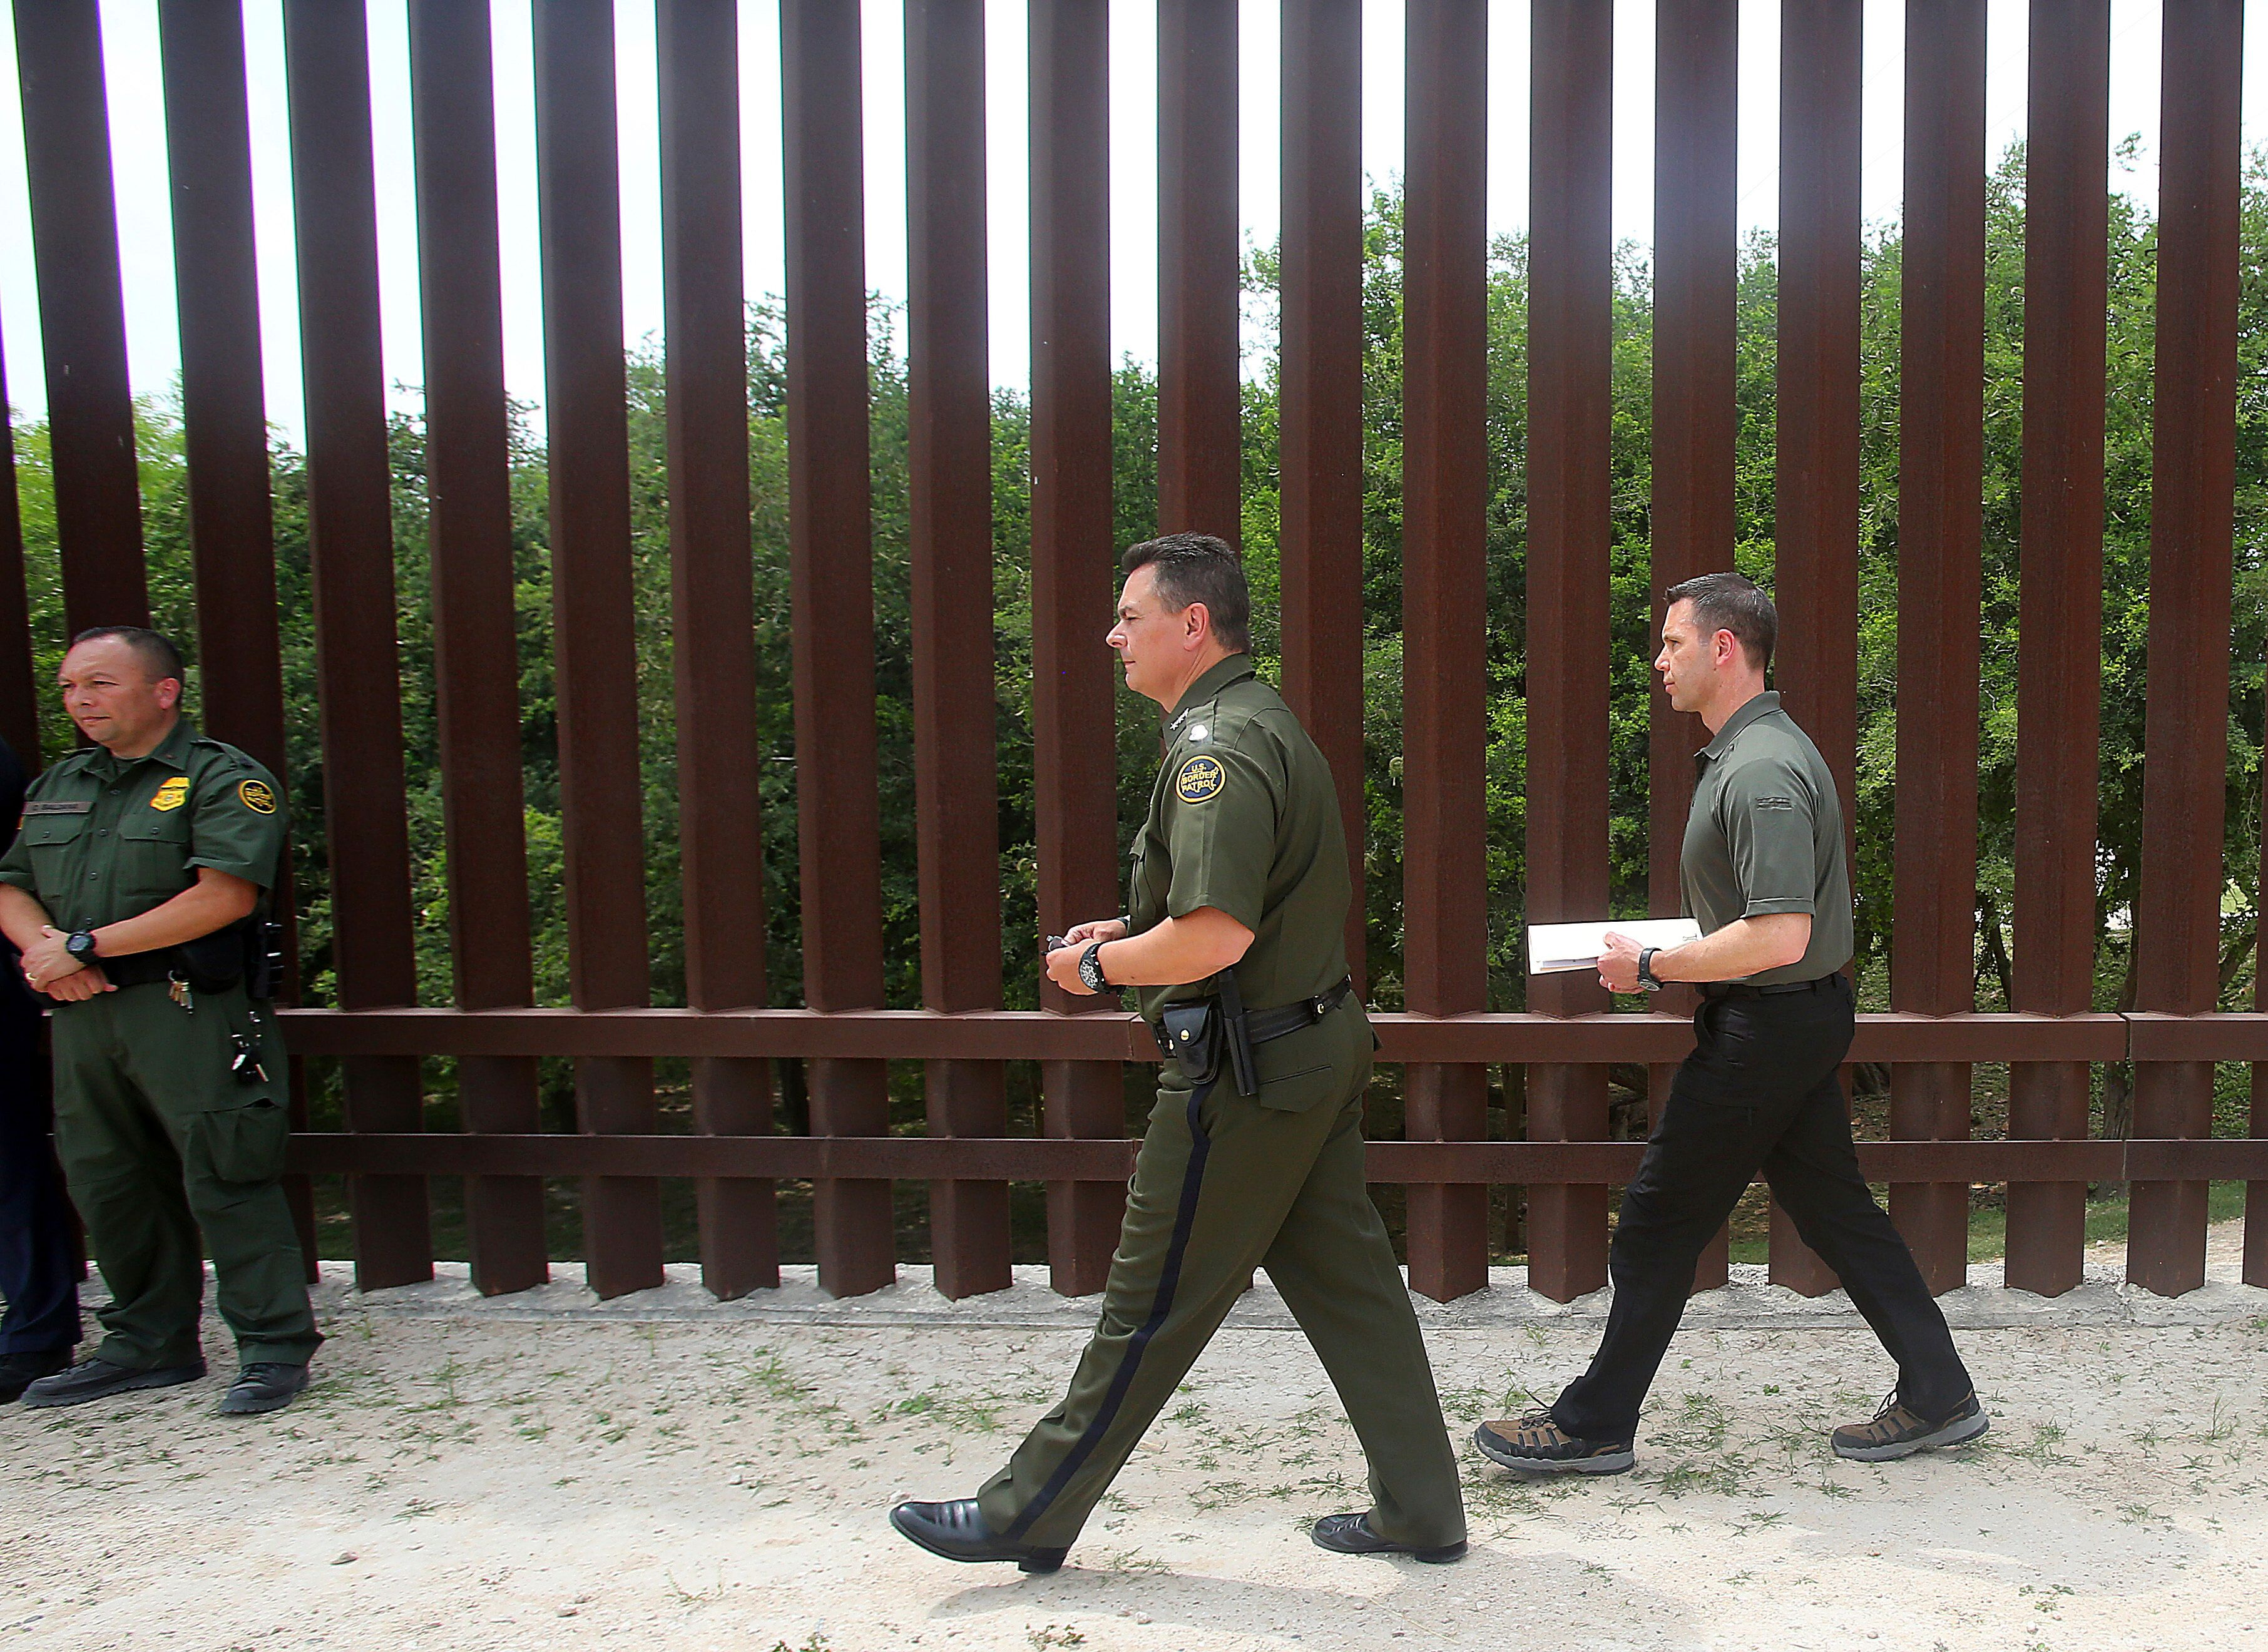 Acting Homeland Security Secretary Kevin McAleenan, right, walks along a portion of the border wall with Rio Grande Valley Border Patrol Sector Chief Rodolfo Karisch to meet with the media, Wednesday, April 17, 2019, in Hidalgo, Texas. (Joel Martinez/The Monitor via AP)